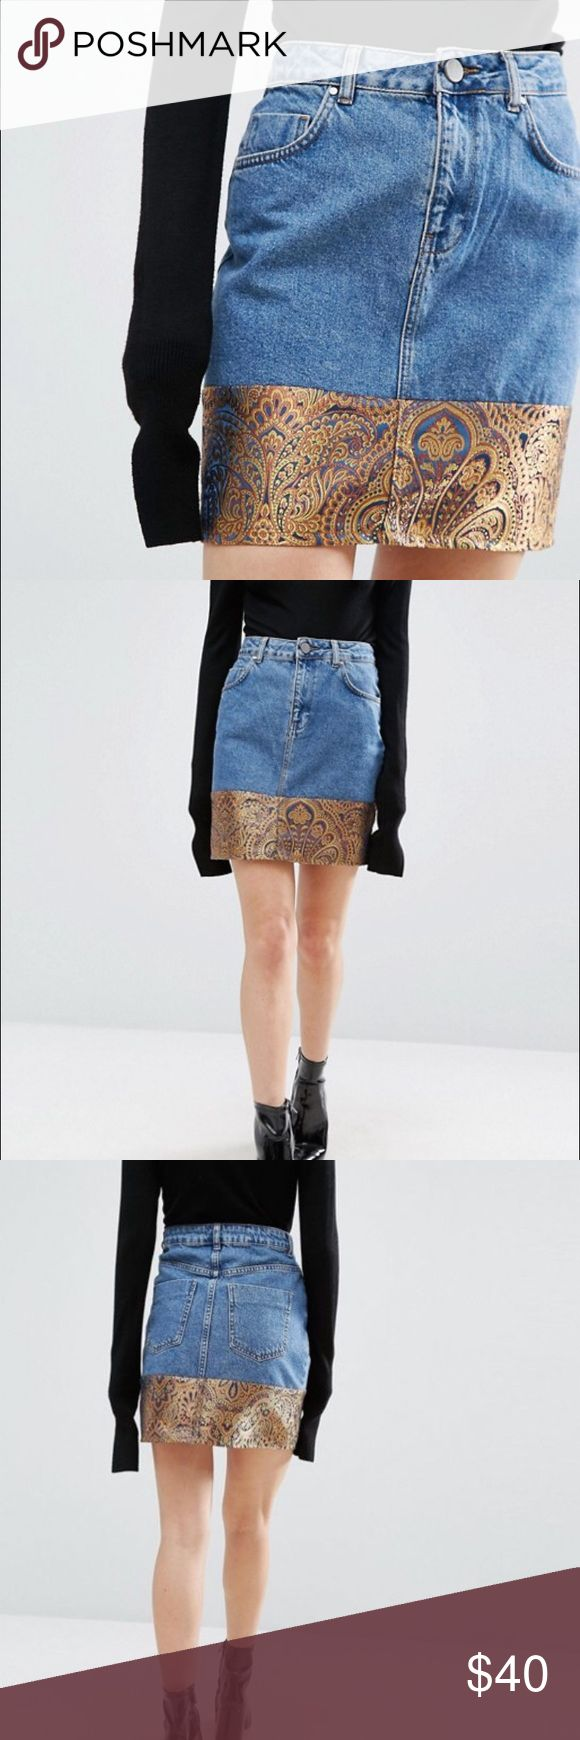 NWT ASOS Denim Mini Skirt with Jacquard Hem Sz 10 New With Tags and in package, ASOS Size 10 Denim, Jacquard Skirt. Matching Top is separate listing. Product Details: Lightweight denim, High-rise waist, Zip fly, Five pocket styling, Contrast jacquard hem, Regular fit - true to size, Machine wash, 100% Cotton. See ASOS Sizing Chart for more precise measurements. ASOS Skirts Mini